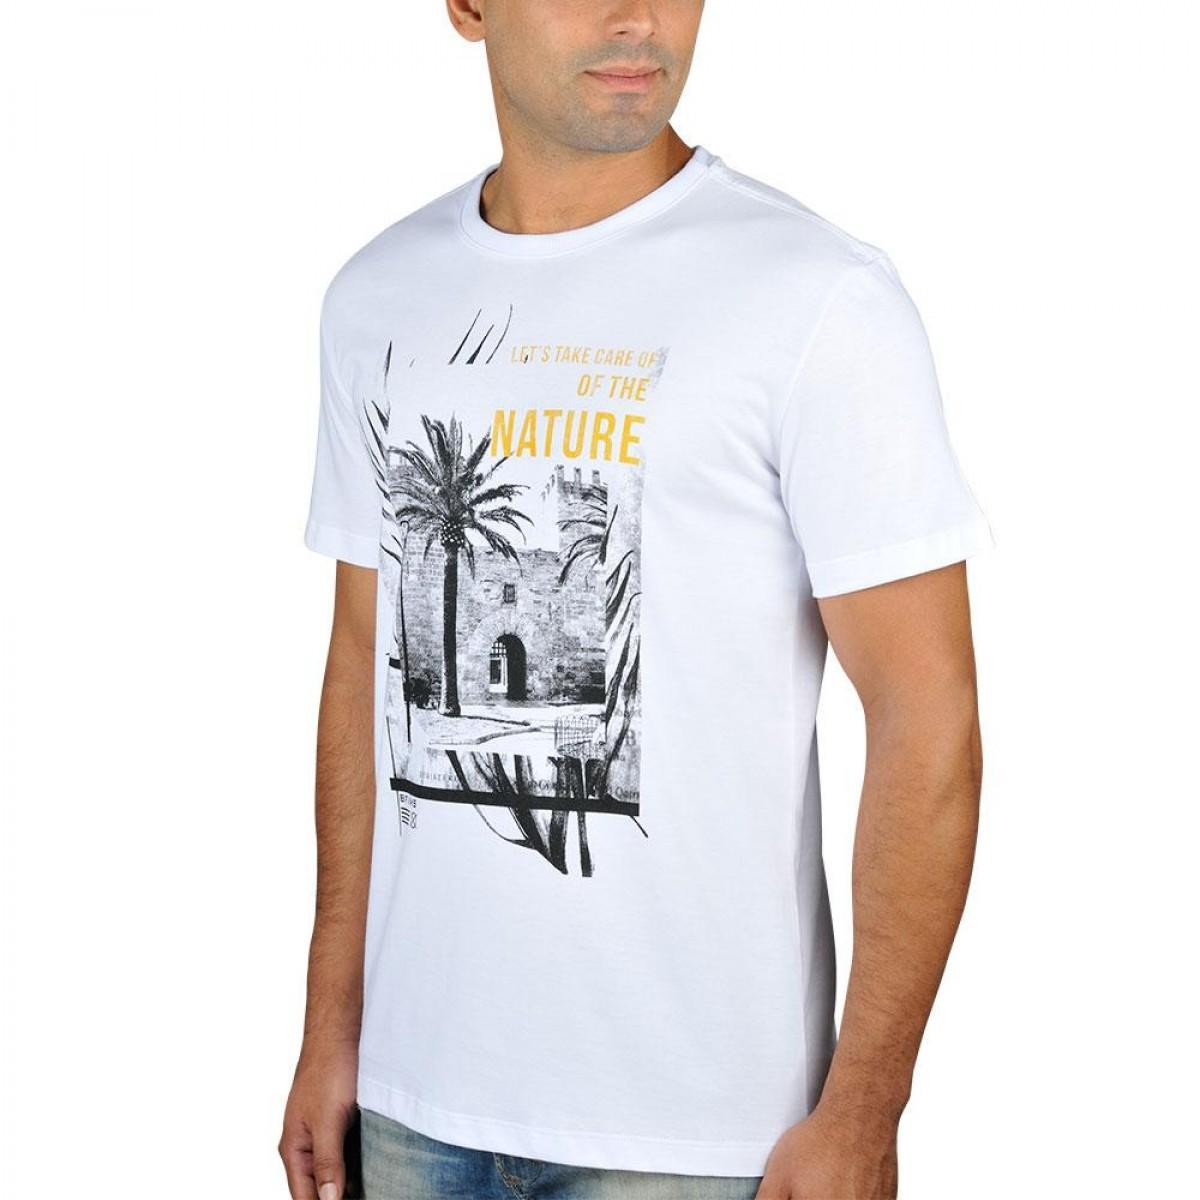 d9c4225fc Camiseta Nature Branca - BF   MS